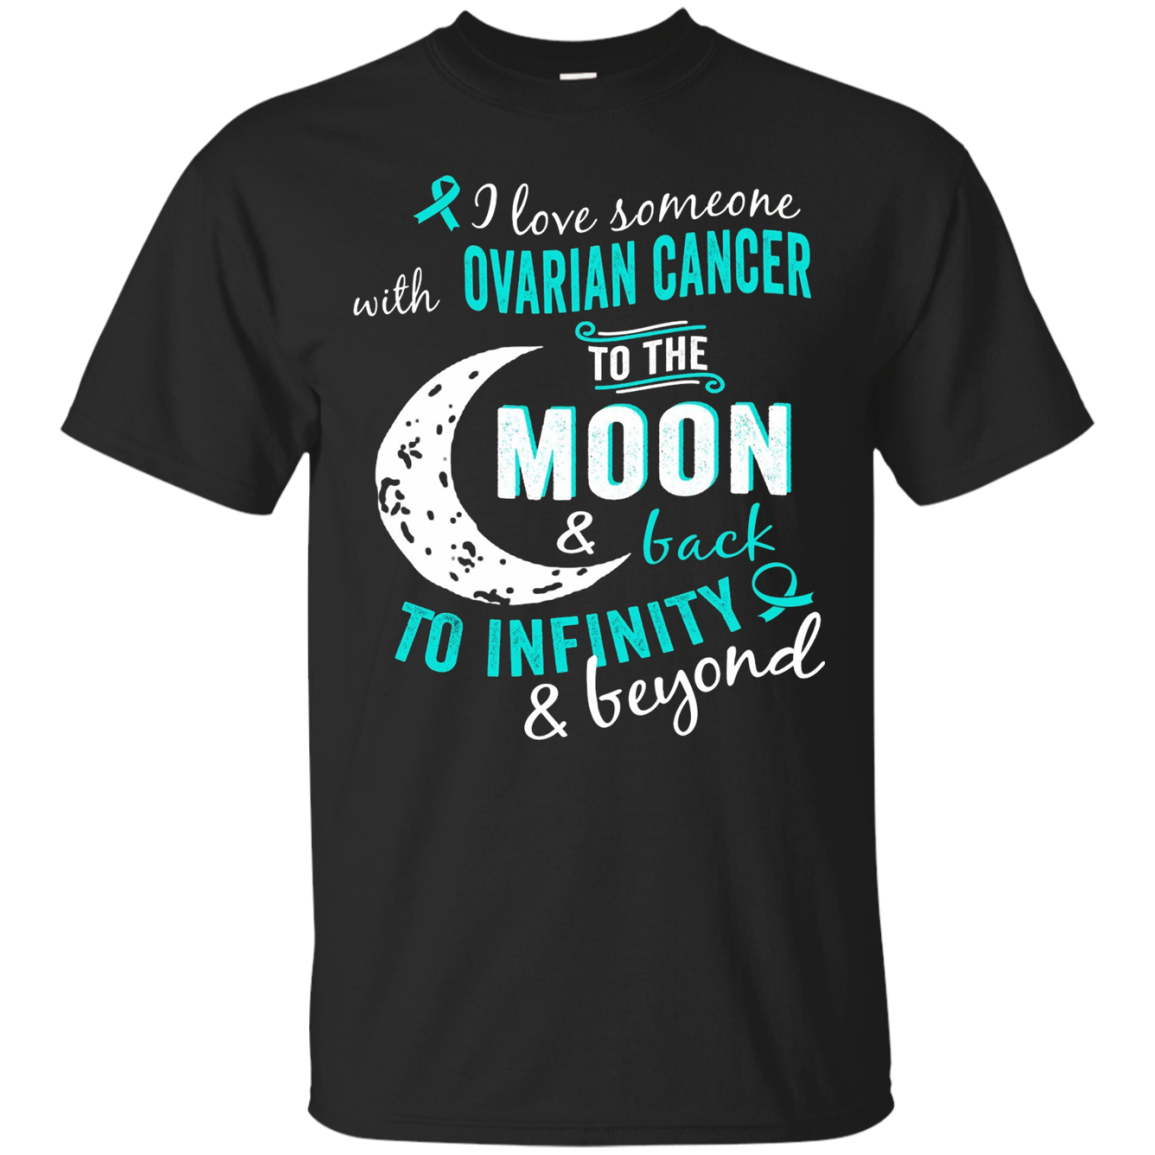 Ovarian Cancer Awareness Shirt For Women Girl